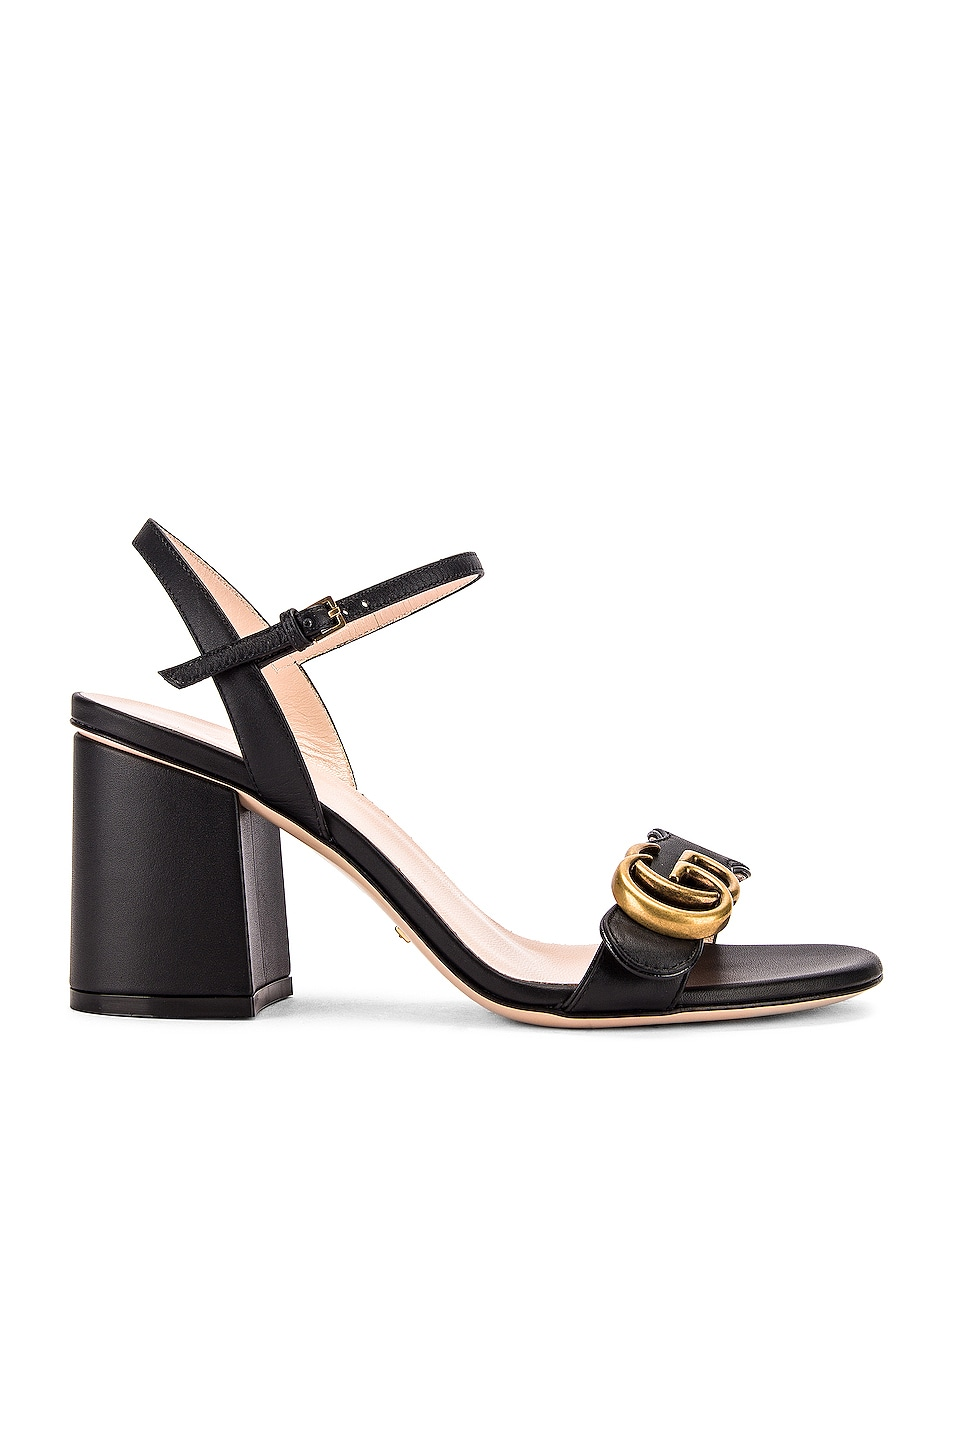 Image 2 of Gucci Leather Mid Heel Sandals in Black